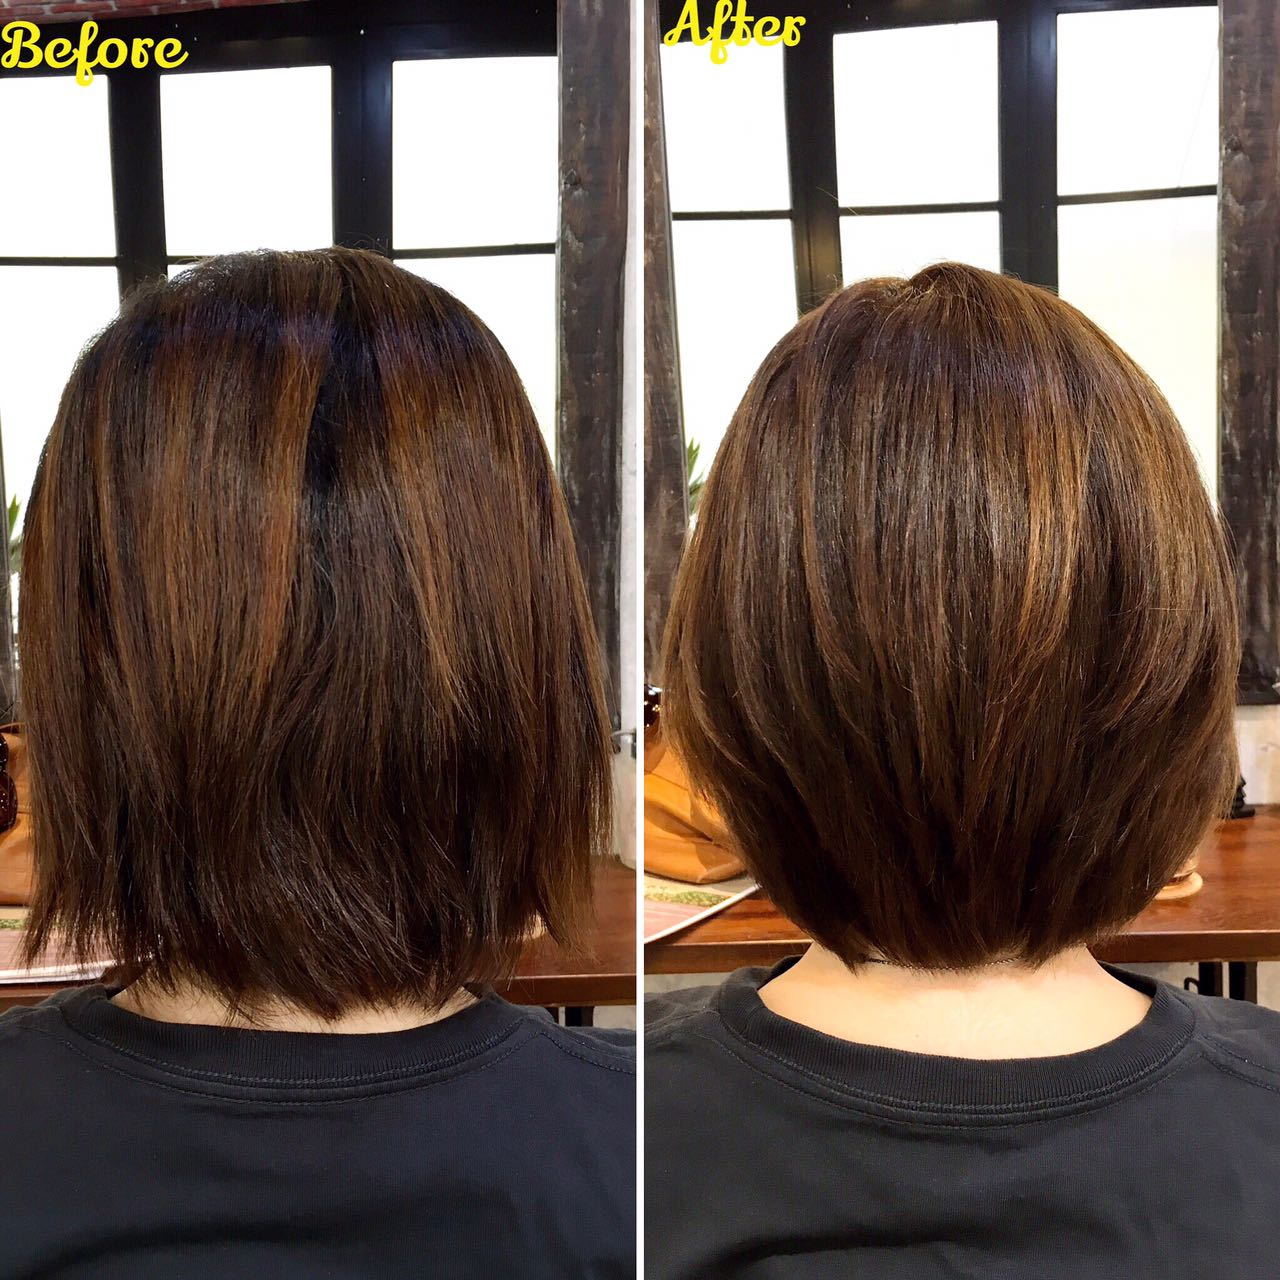 Before and After Rebonding on Short Hair by Rubik Salon